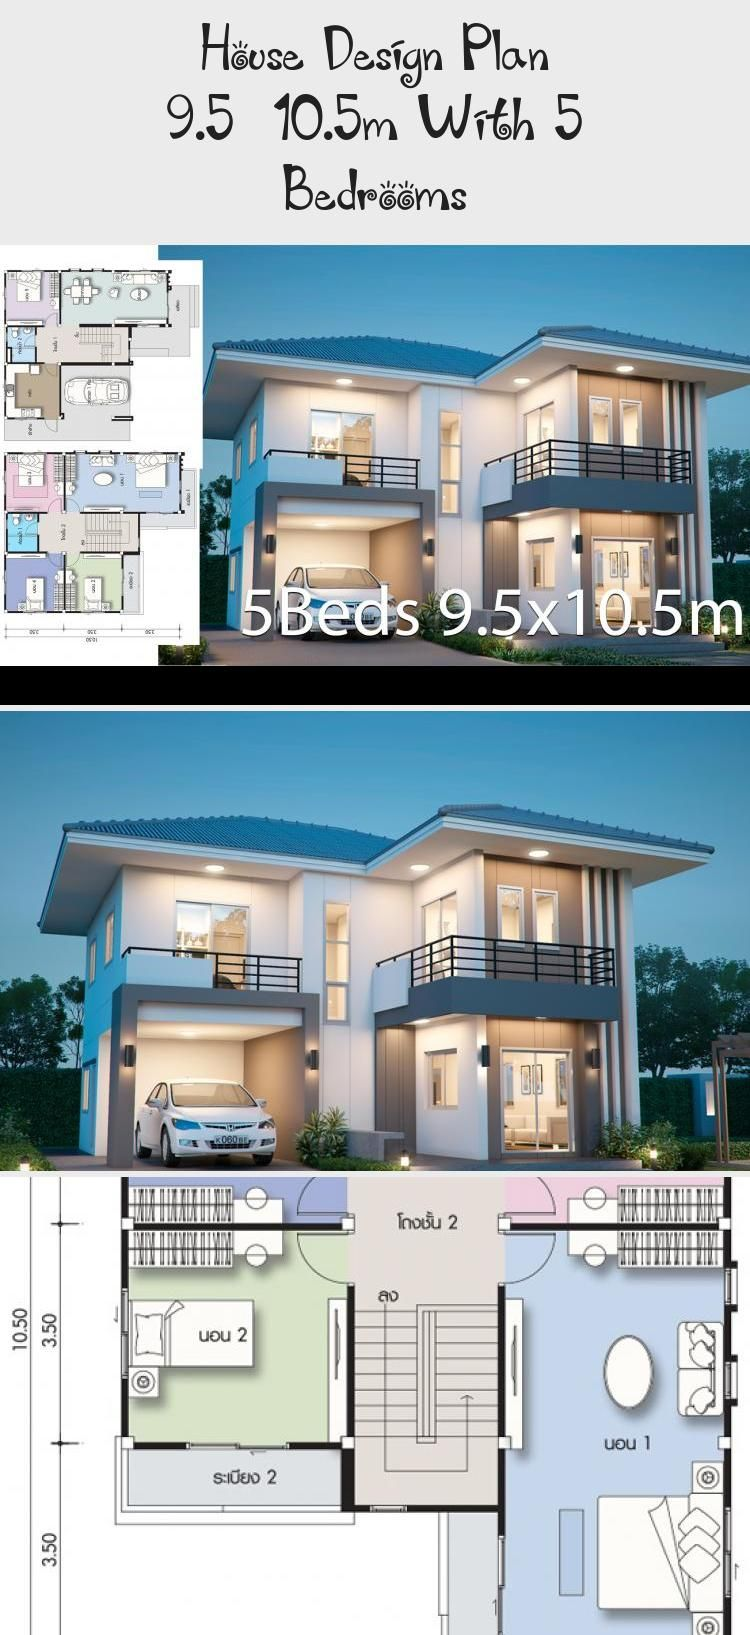 House Design Plan 9 5x10 5m With 5 Bedrooms Home Design With Plansearch Modernhousedesign1floor Modernhousedesignbedro In 2020 Home Design Plans House Design House